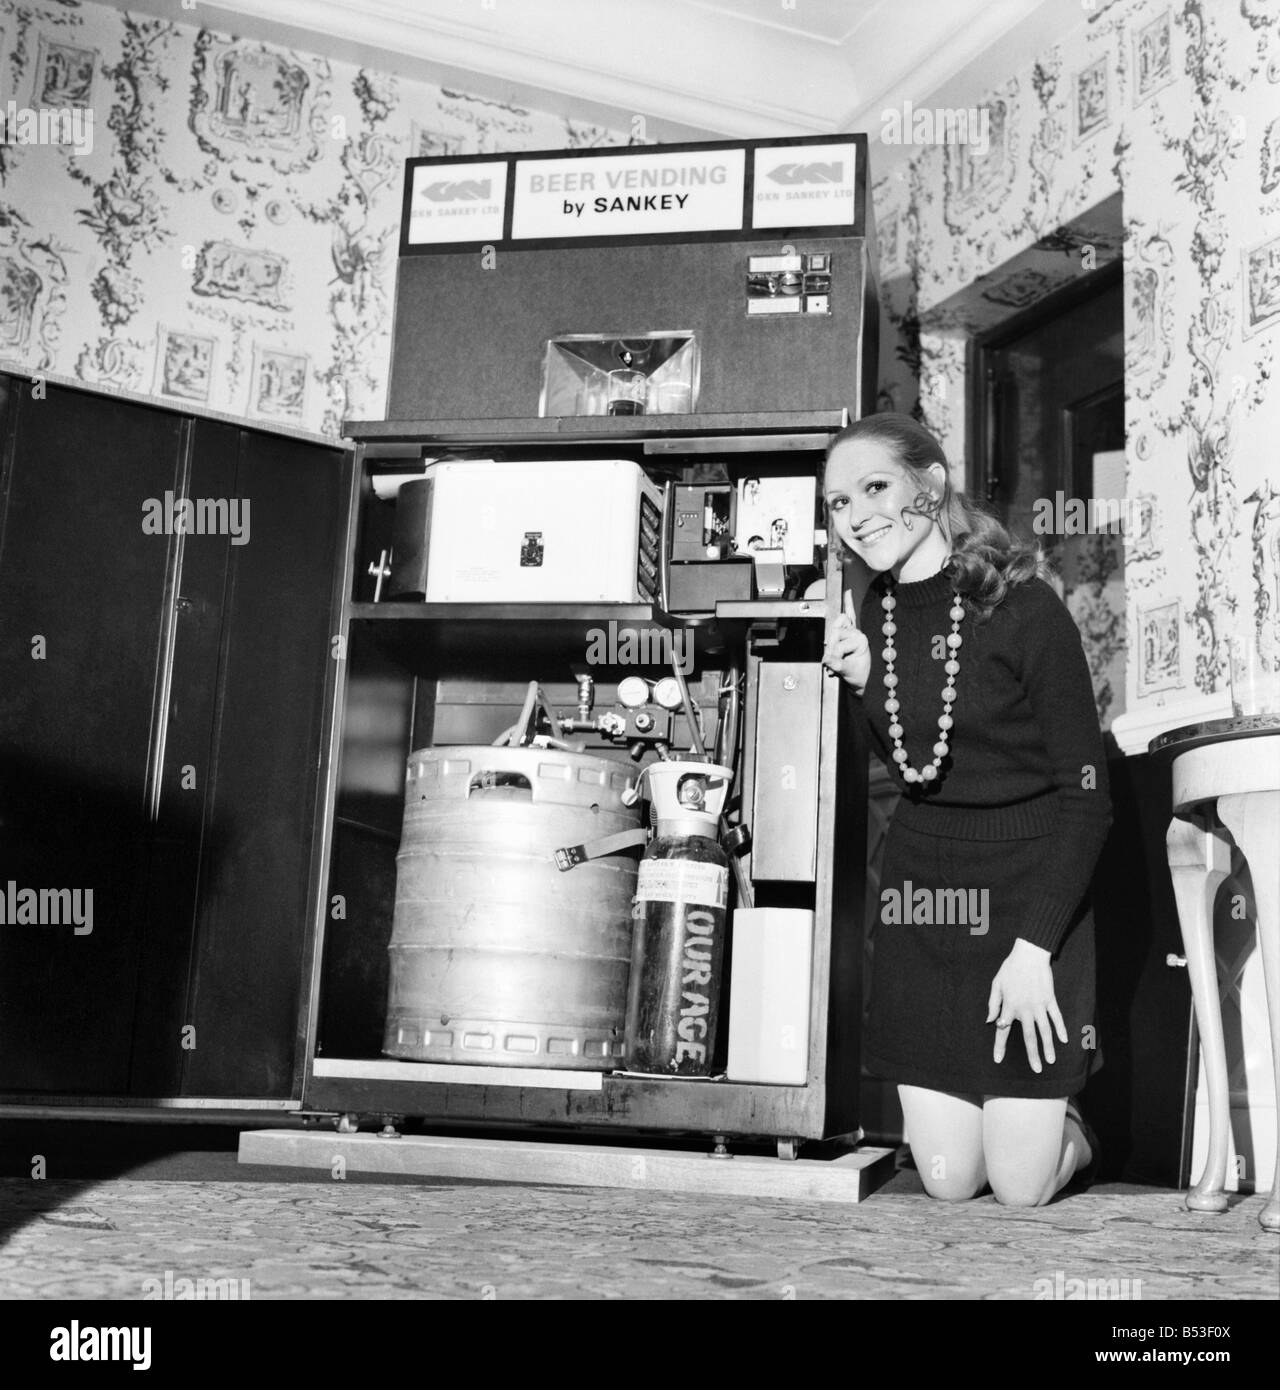 Inventions: Britain's first automatic refrigerated draught beer vending machine was demonstrated by the Brewery - Stock Image